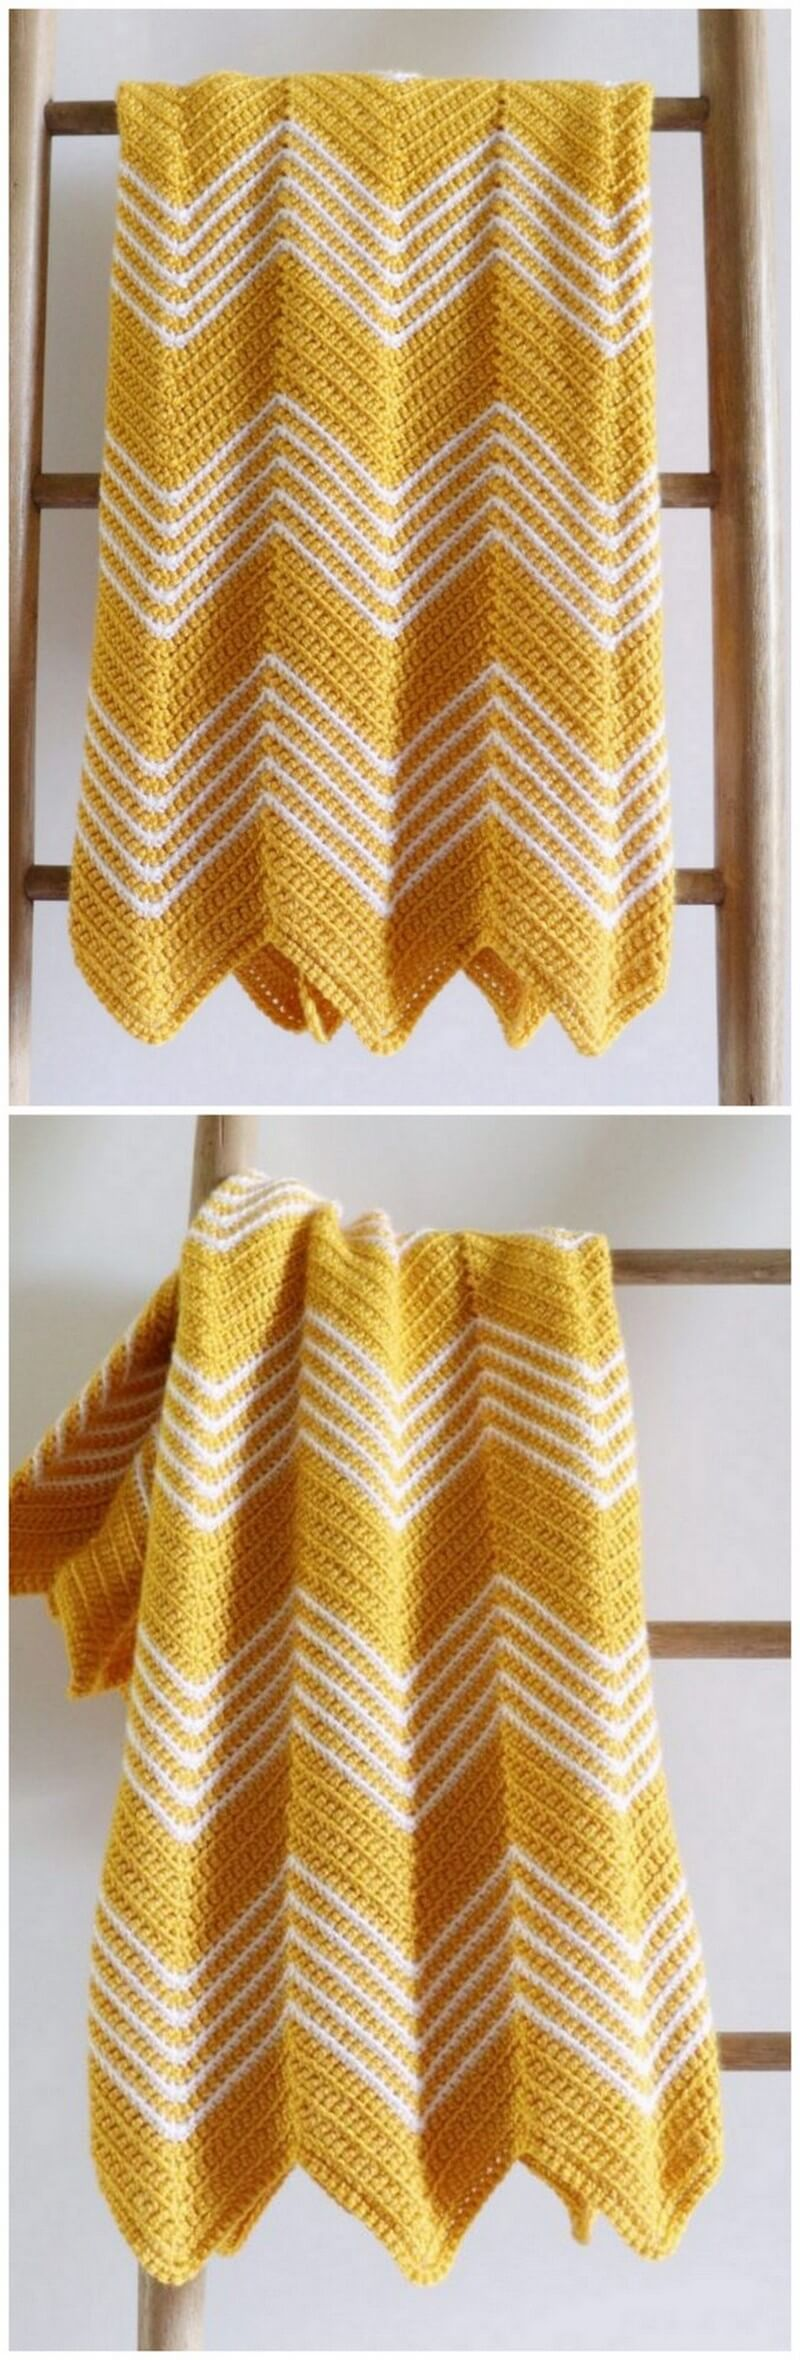 Easy Crochet Blanket Pattern (25)